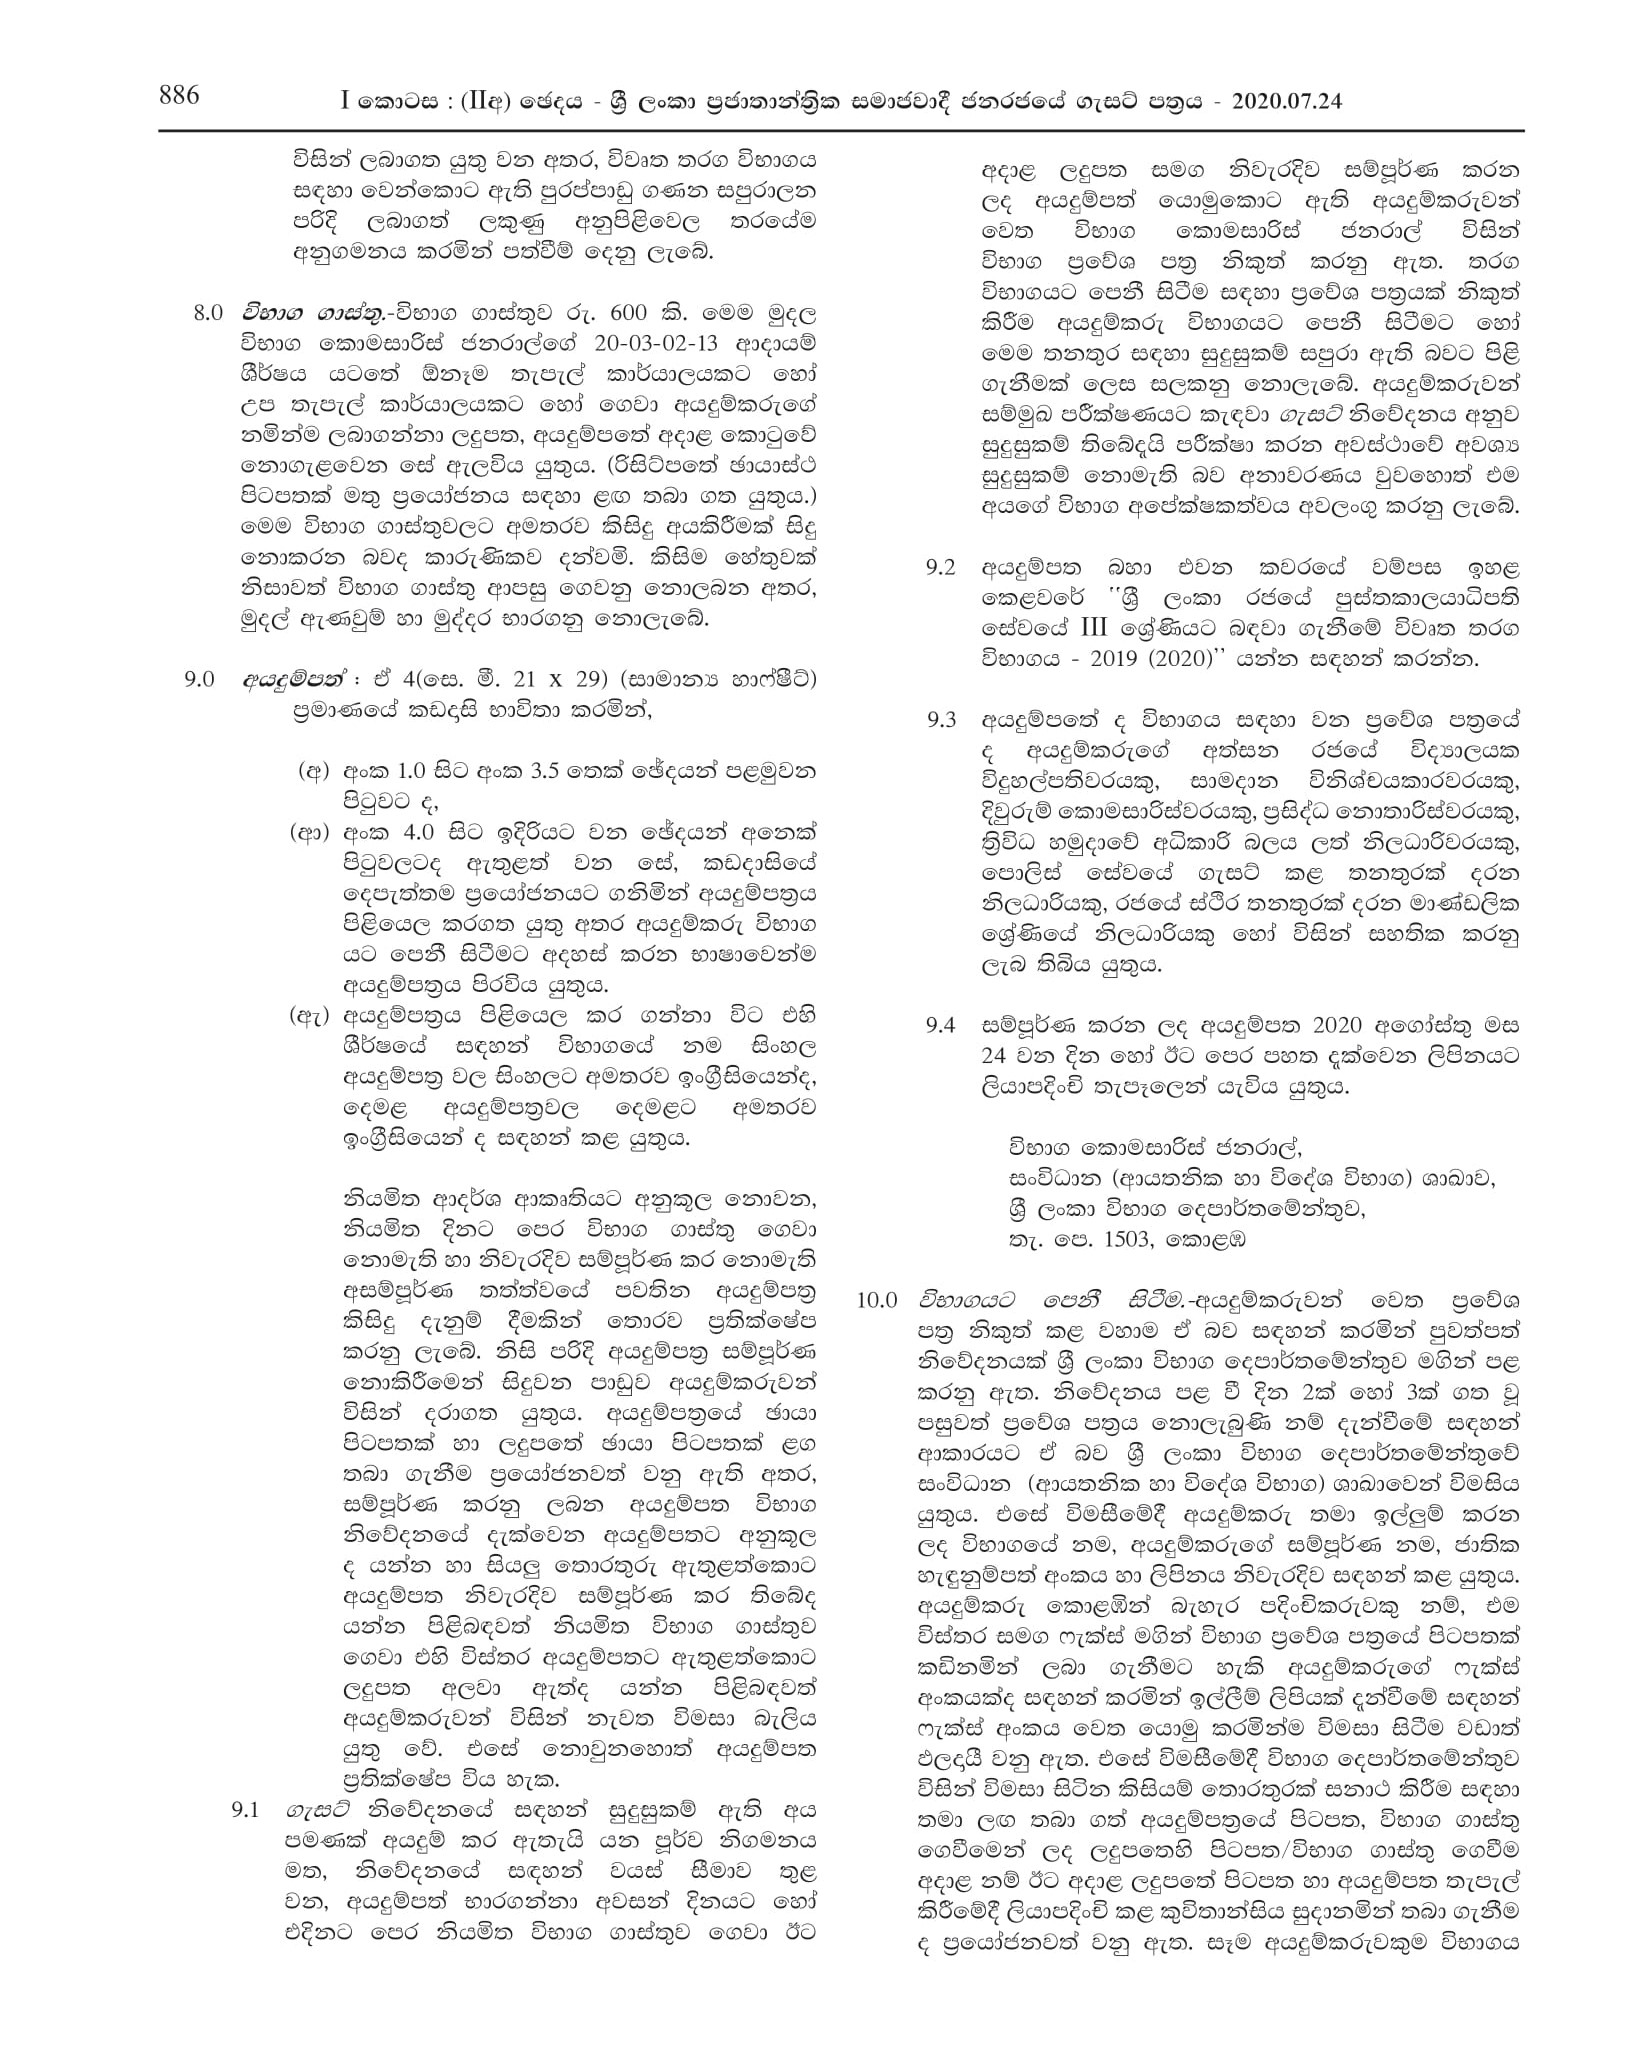 Open Competitive Exam for Recruitment to Grade III of Sri Lanka Government Librarians' Service - 2019 (2020)